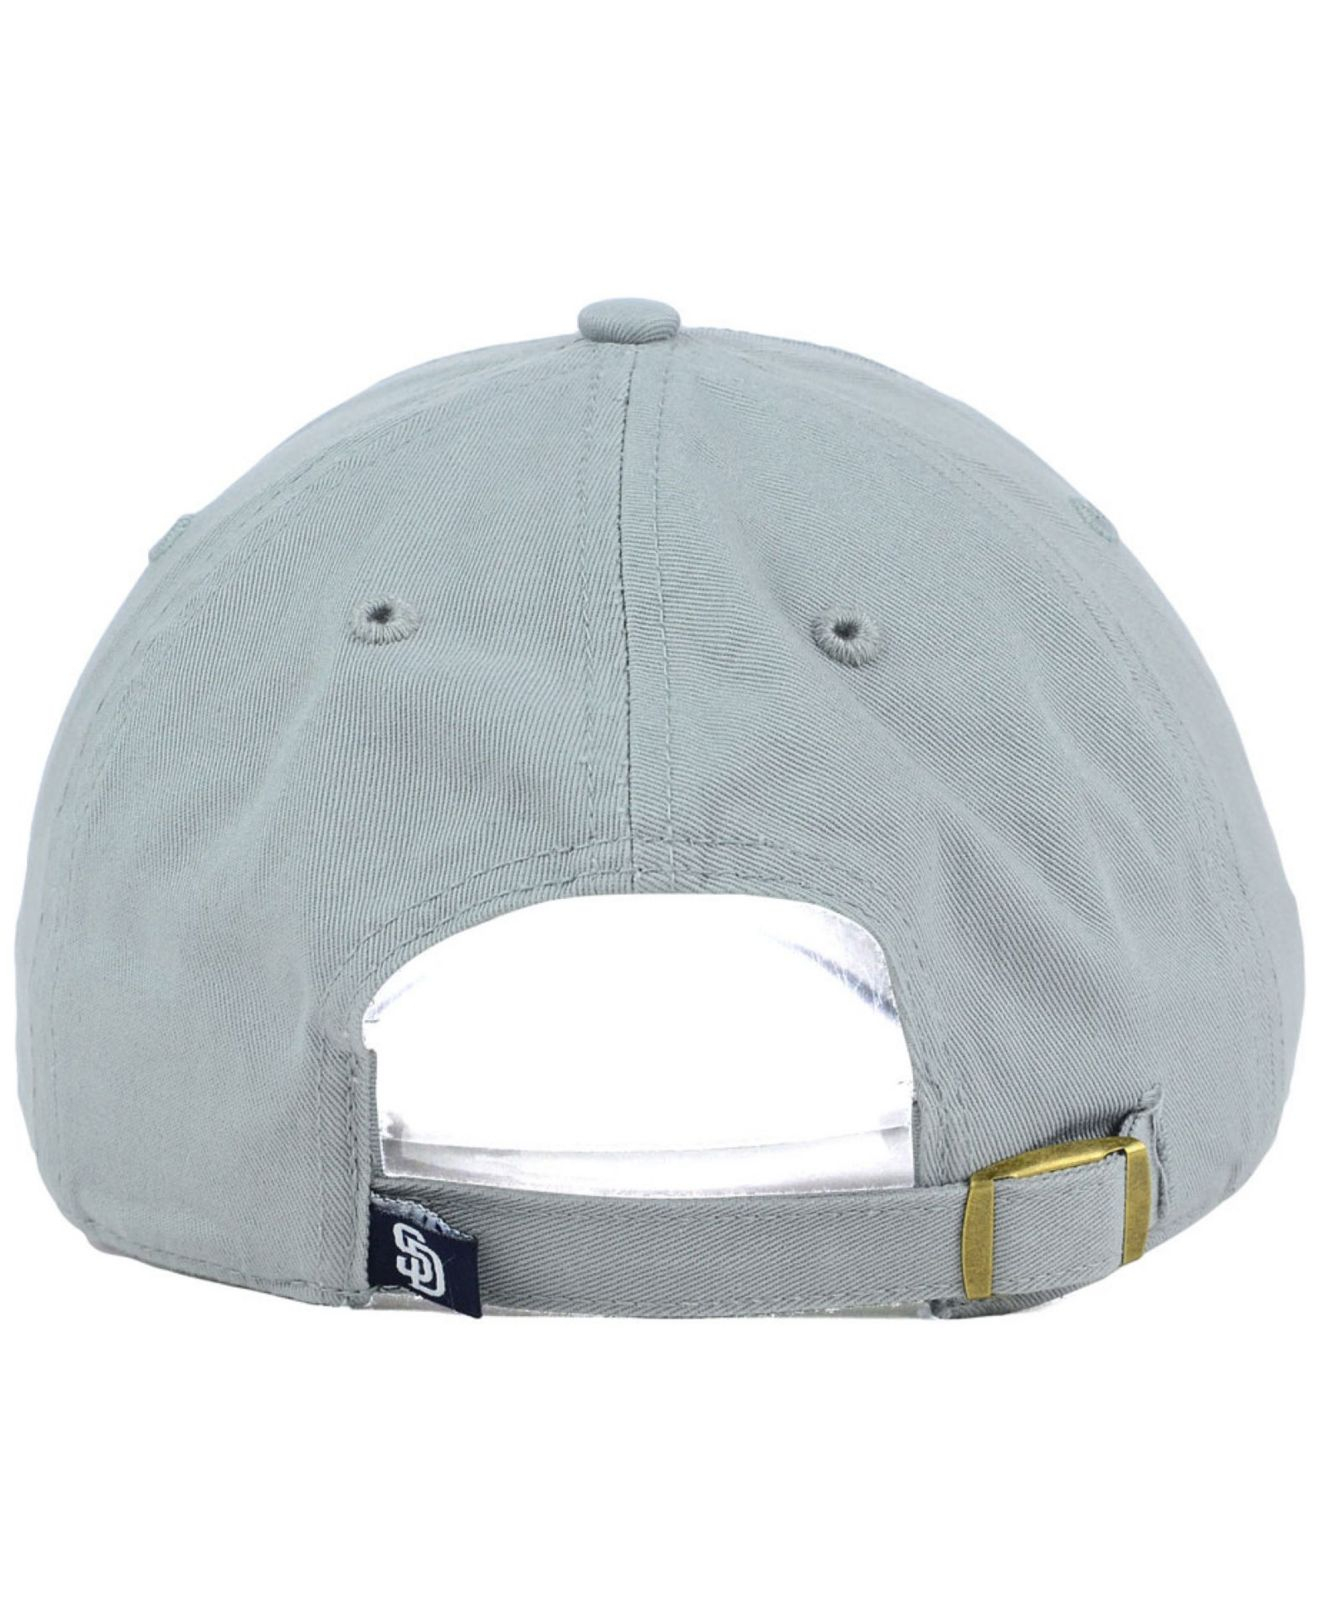 quality design 8a9e8 b80d9 ... 59fifty new era fitted hats navy gray under brim 7a16d f854b  purchase  lyst 47 brand san diego padres adjustable cap in gray for men 7b2b8 787c2